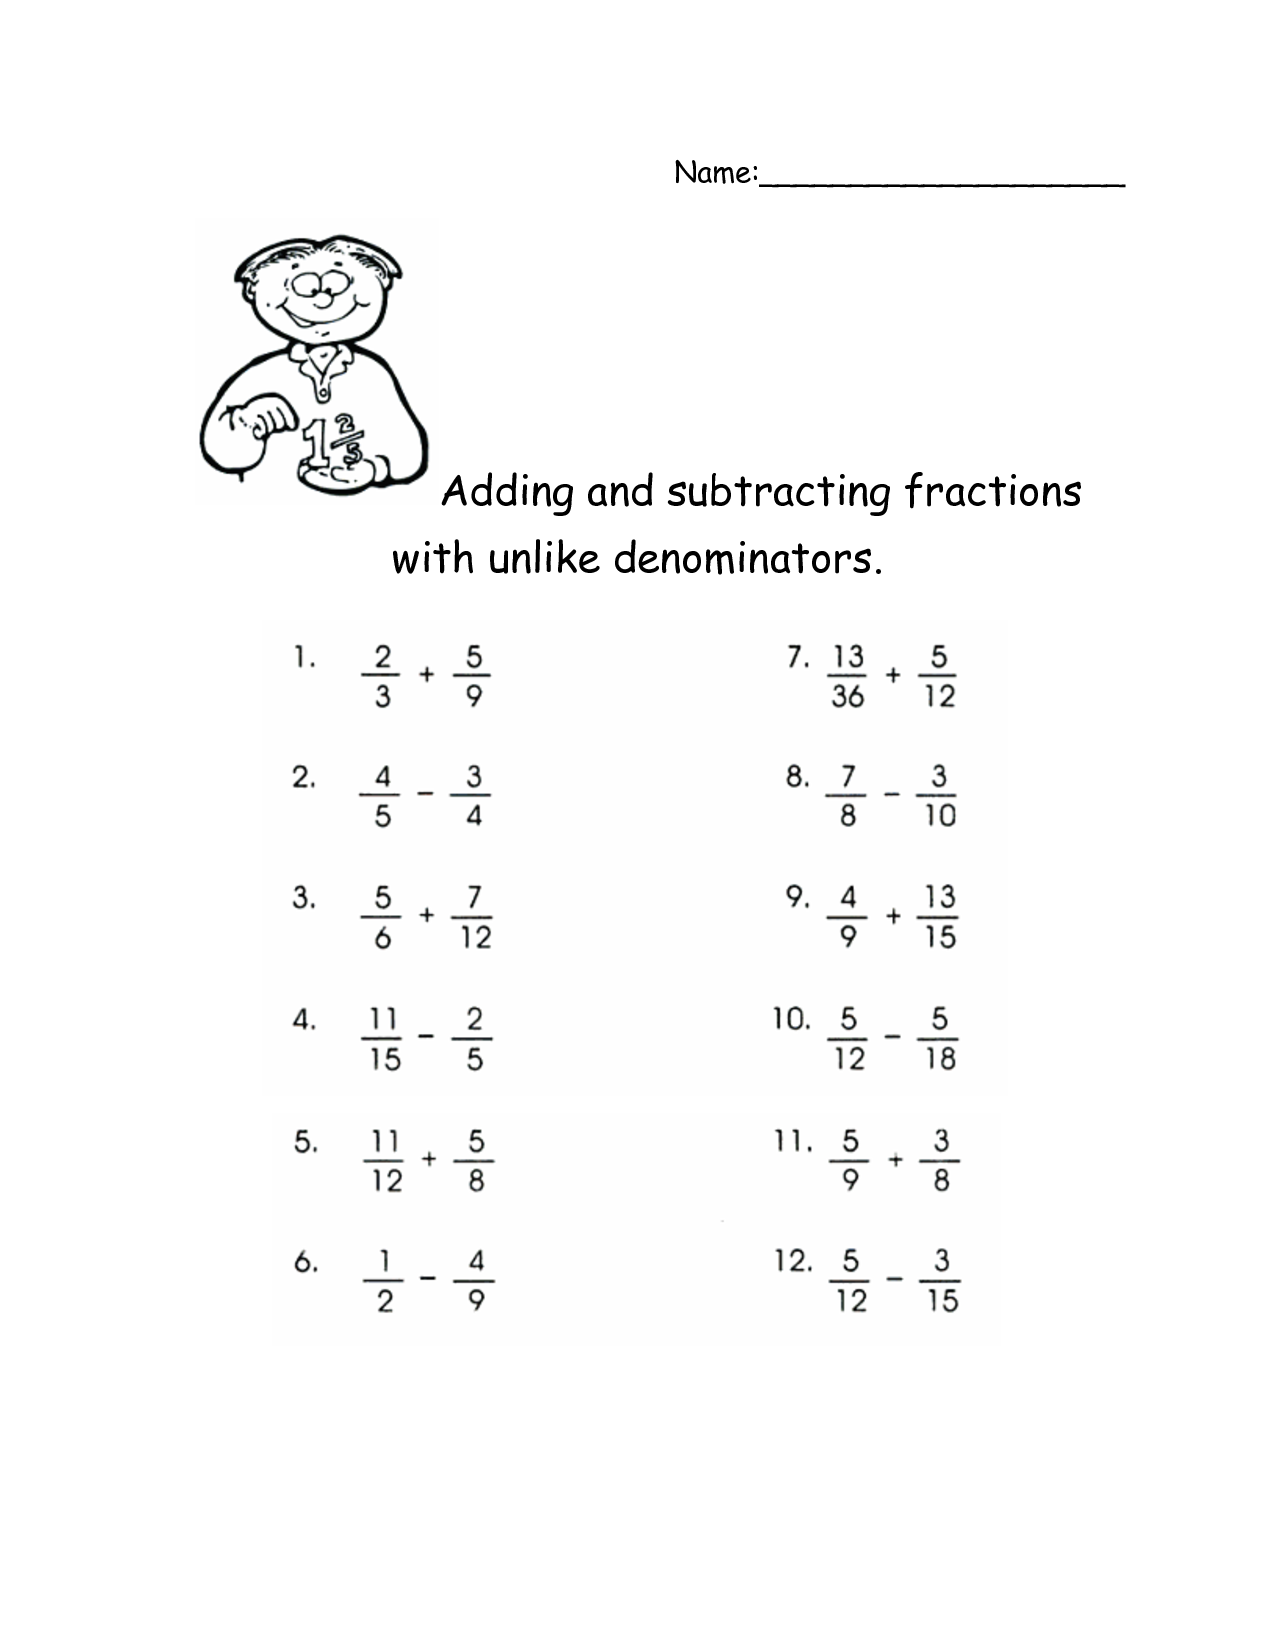 worksheet Adding Fractions With Different Denominators Worksheets adding and subtracting fractions with unlike denominators activities